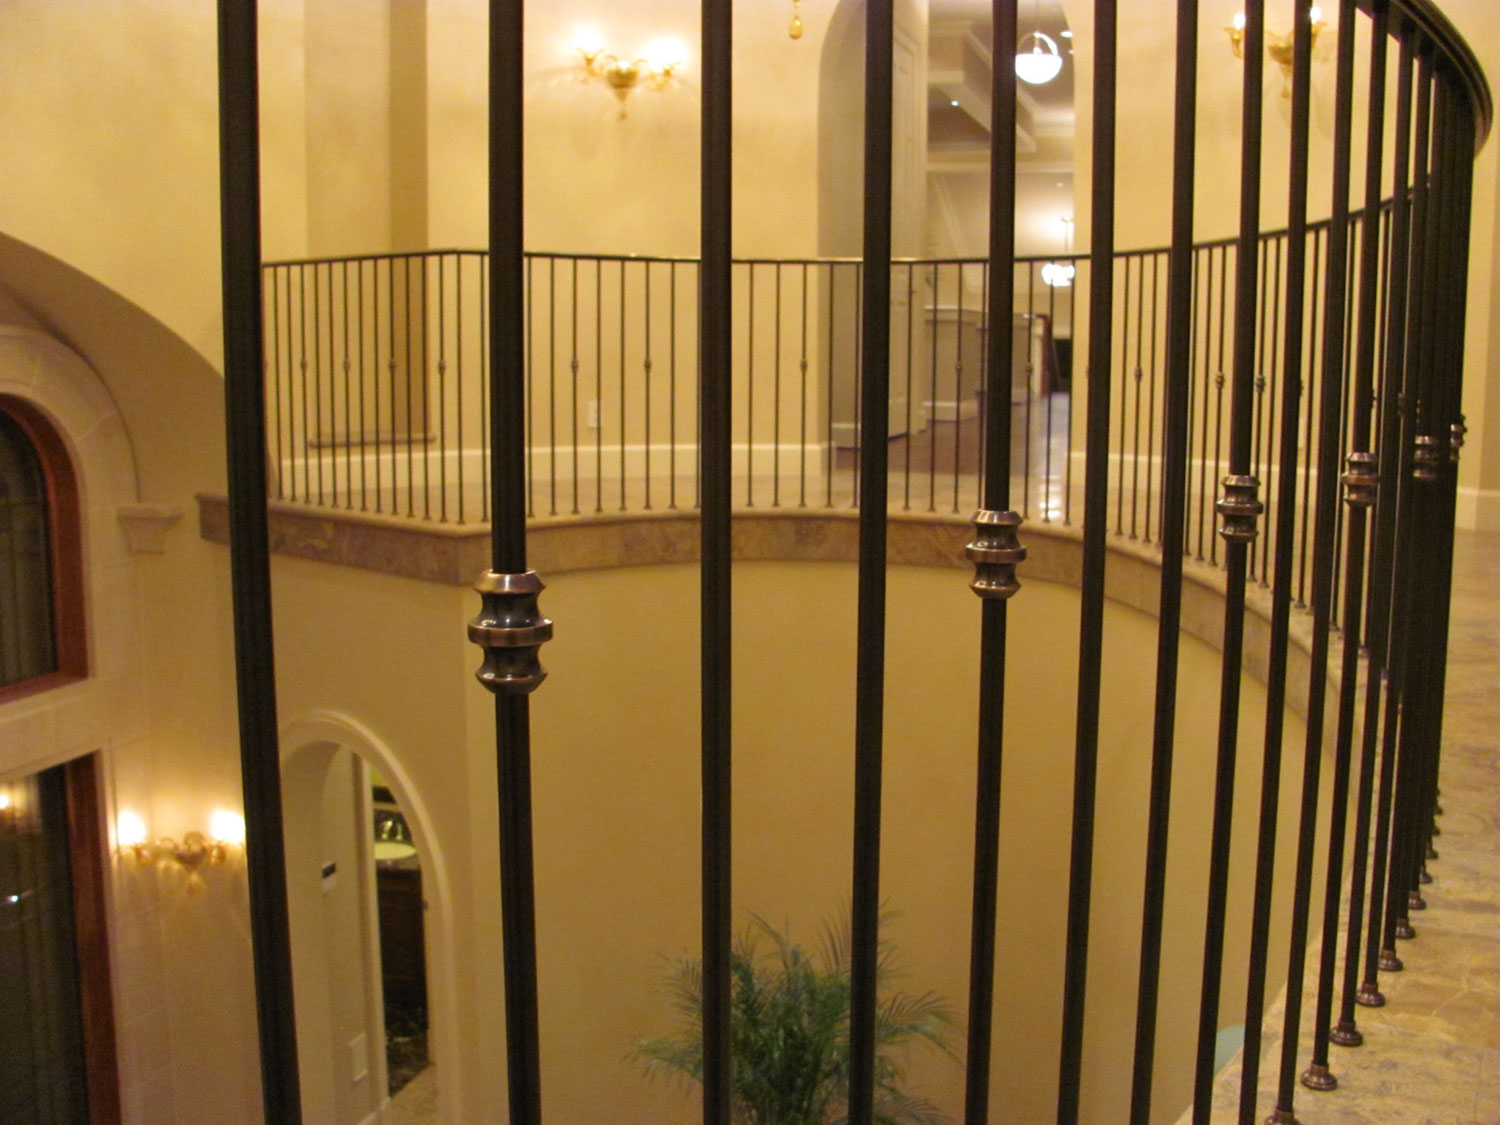 Elegant Pitch and Curved Railing - Close Up of Pickets - Seattle, WA